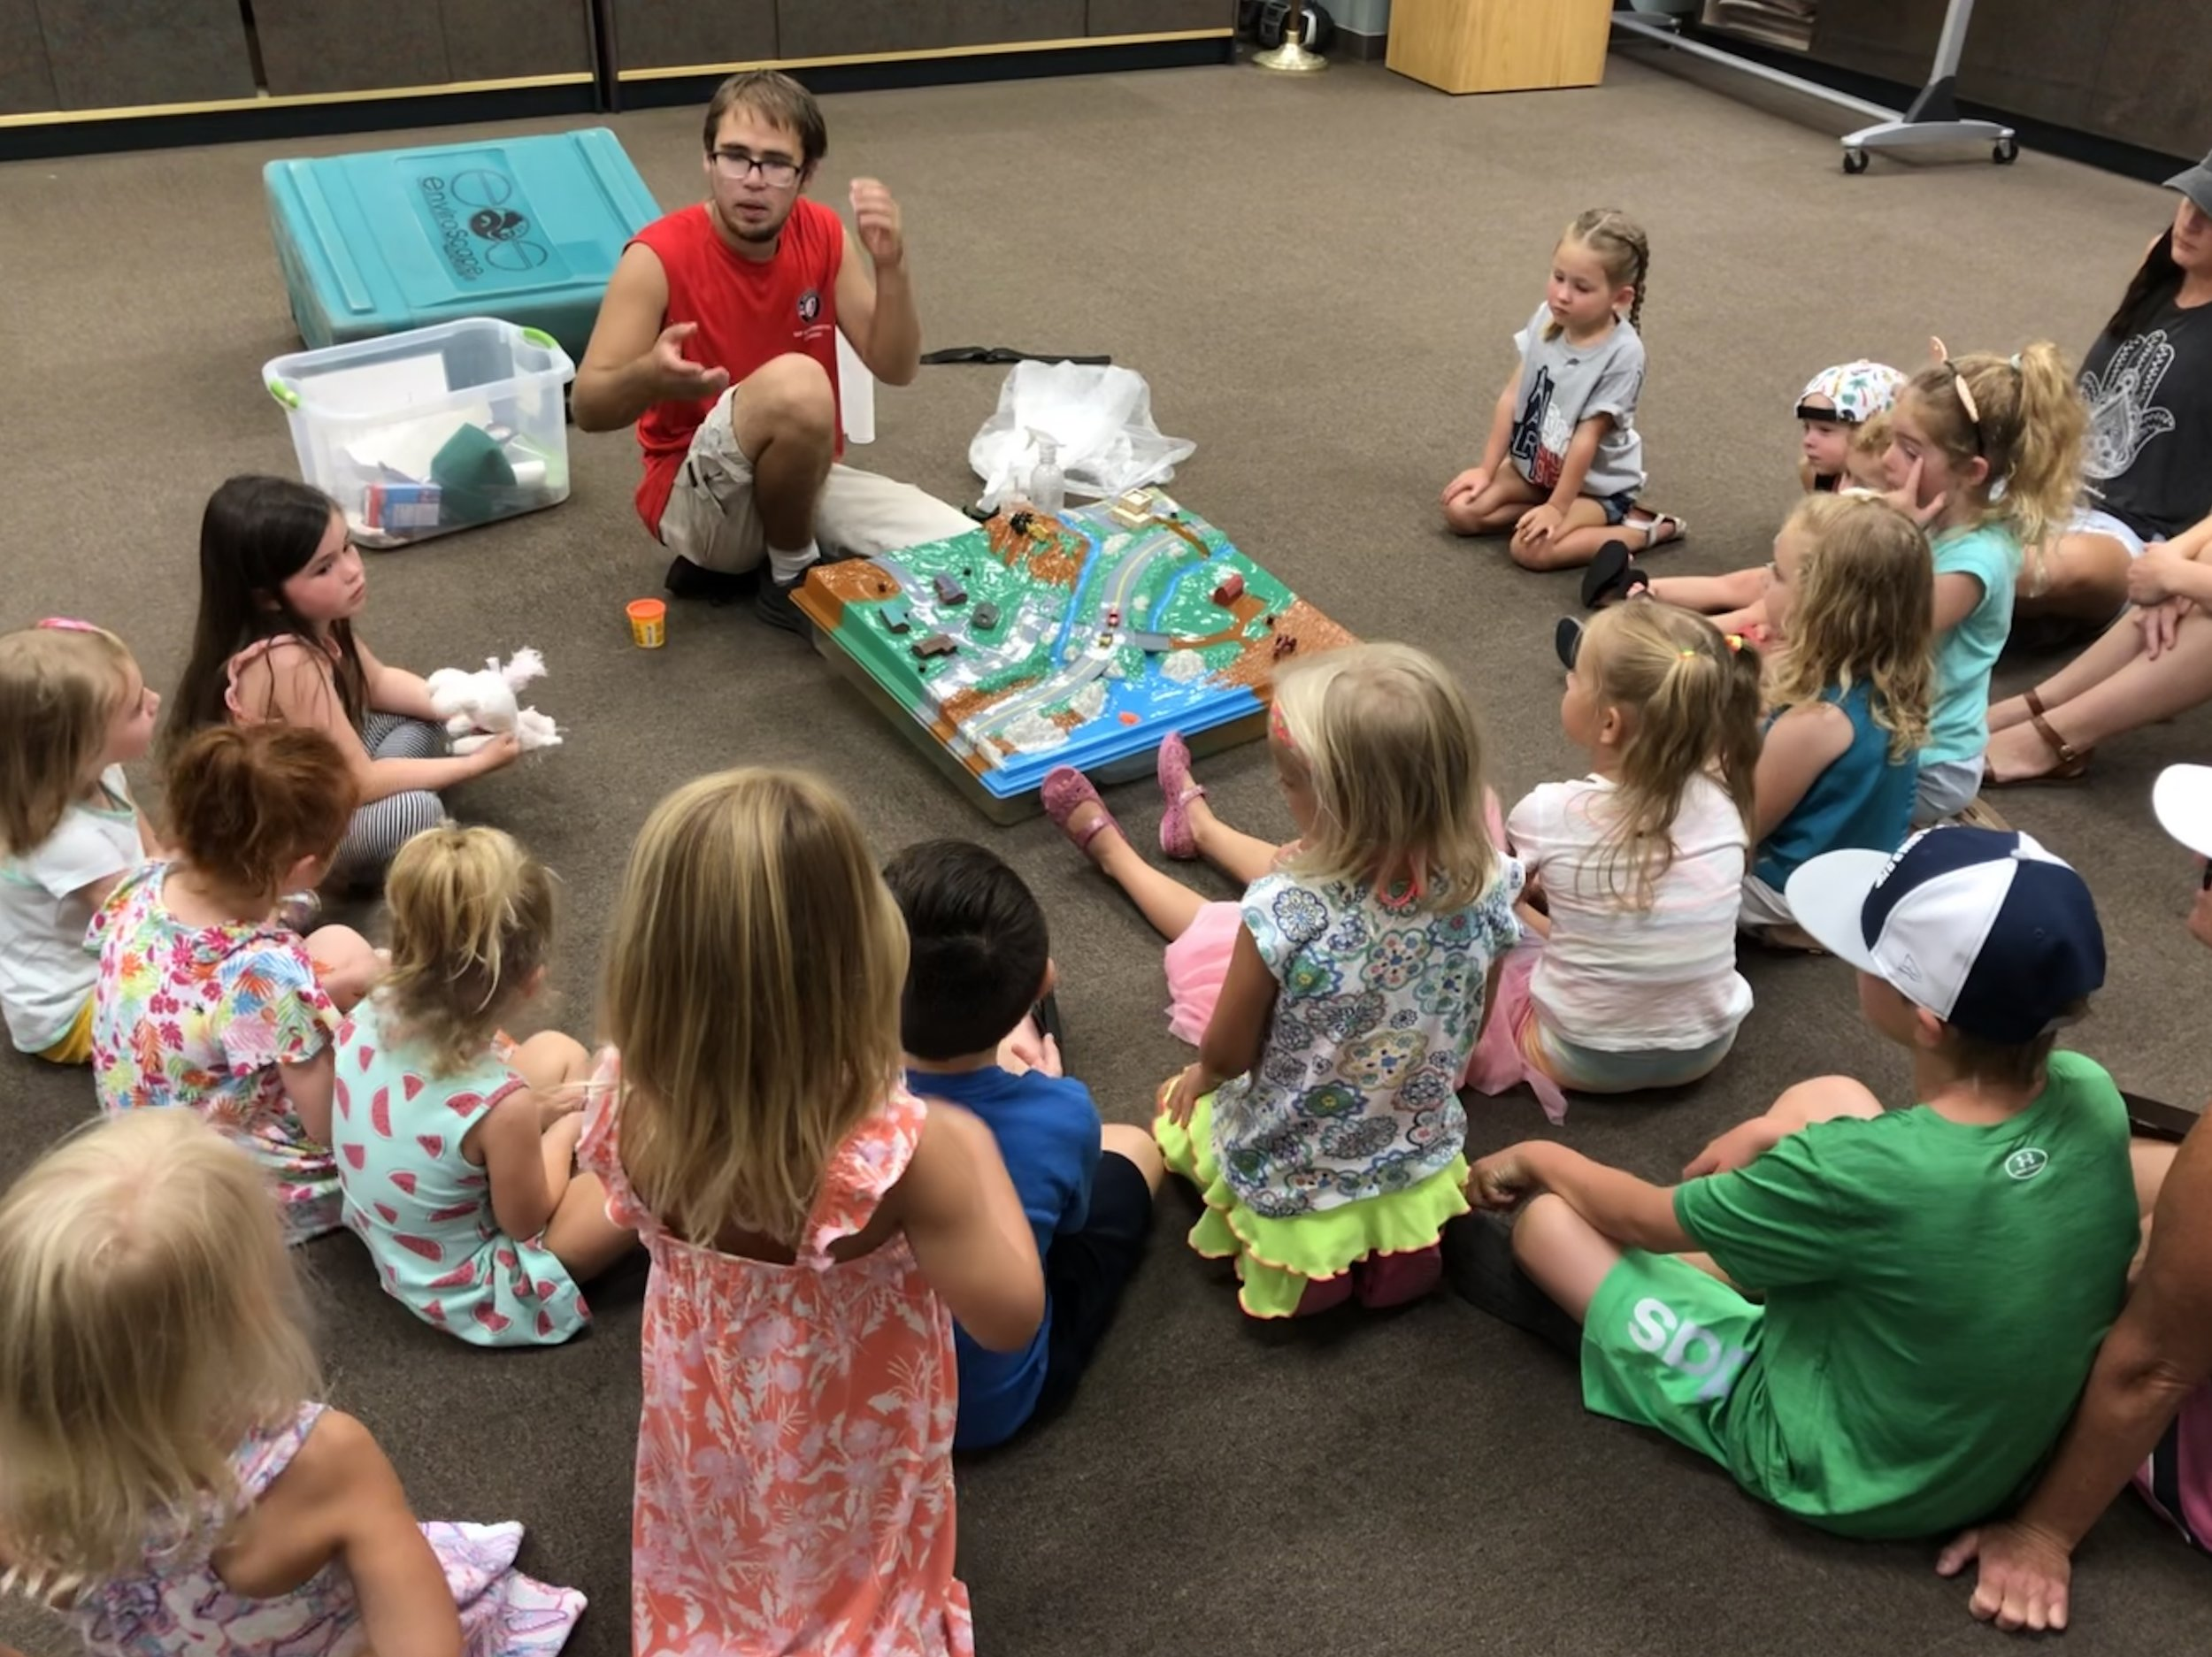 Representatives from the AmeriCorps/Choctawhatchee Basin Alliance Grasses In Classes program spoke with children as part of the Shelves to Shores summer series at local libraries.